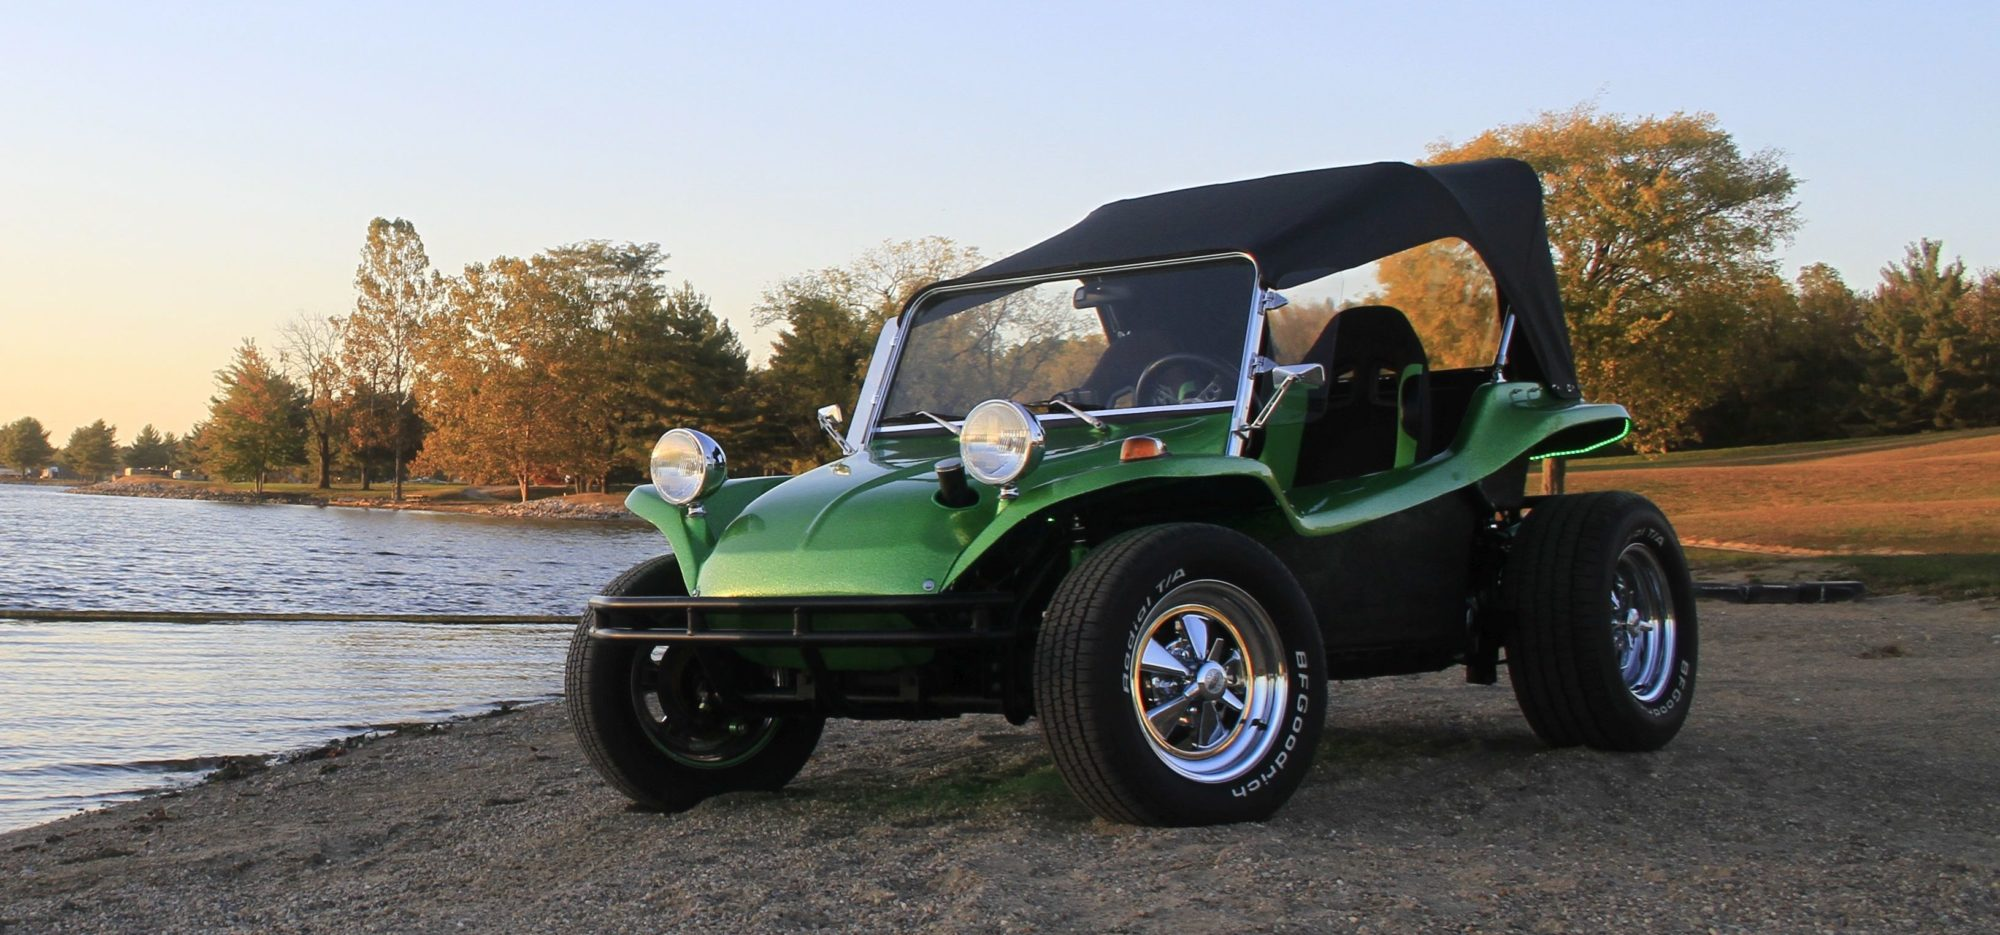 Save the Texas Dune Buggy, Sandrail & Kitcar